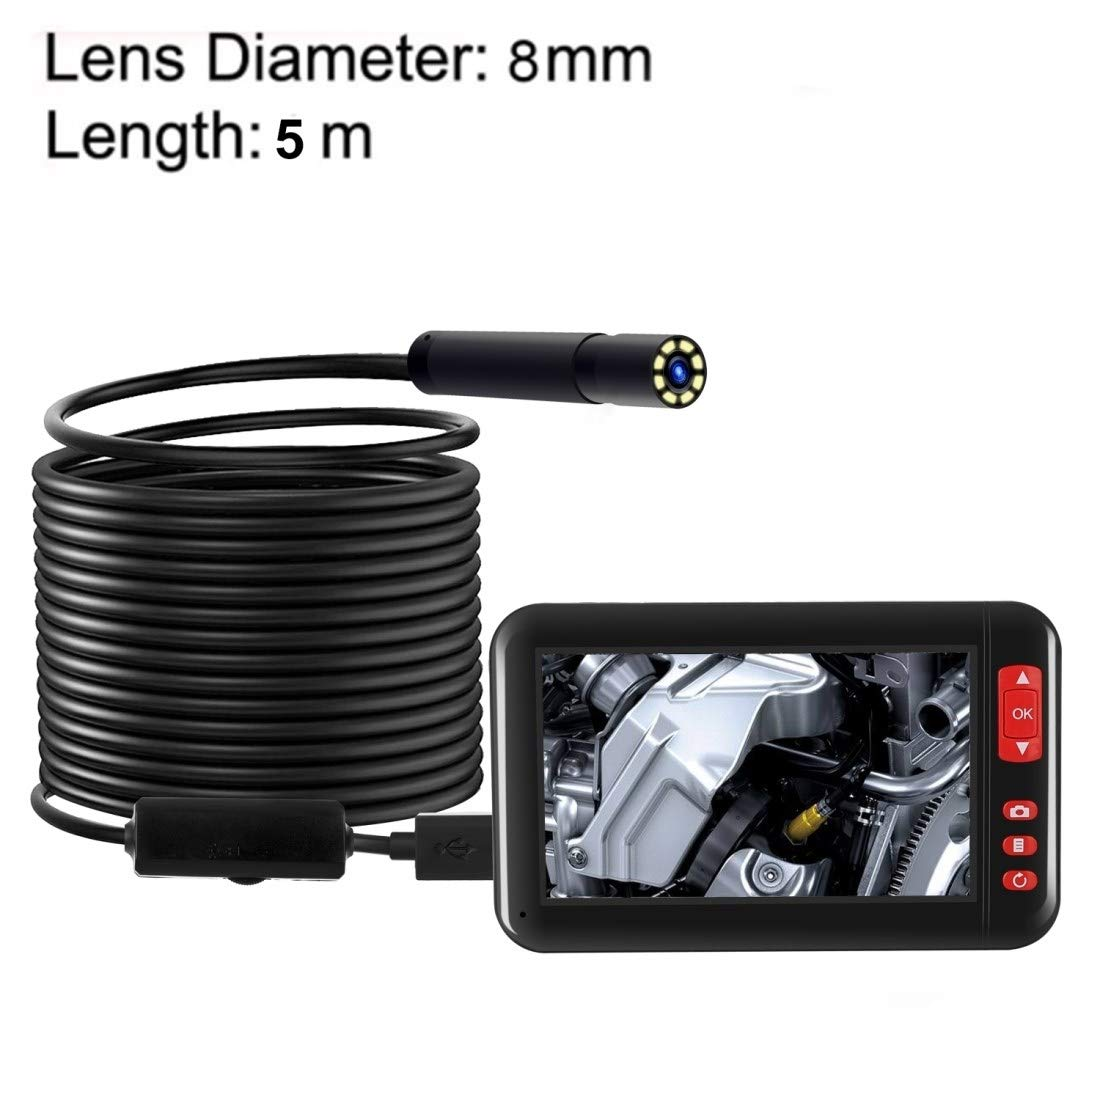 QGT F200 4.3 Inch Screen Display HD1080P Snake Tube Inspection Endoscope with 8 LEDs, Length: 5m, Lens Diameter: 8mm, Hard Line